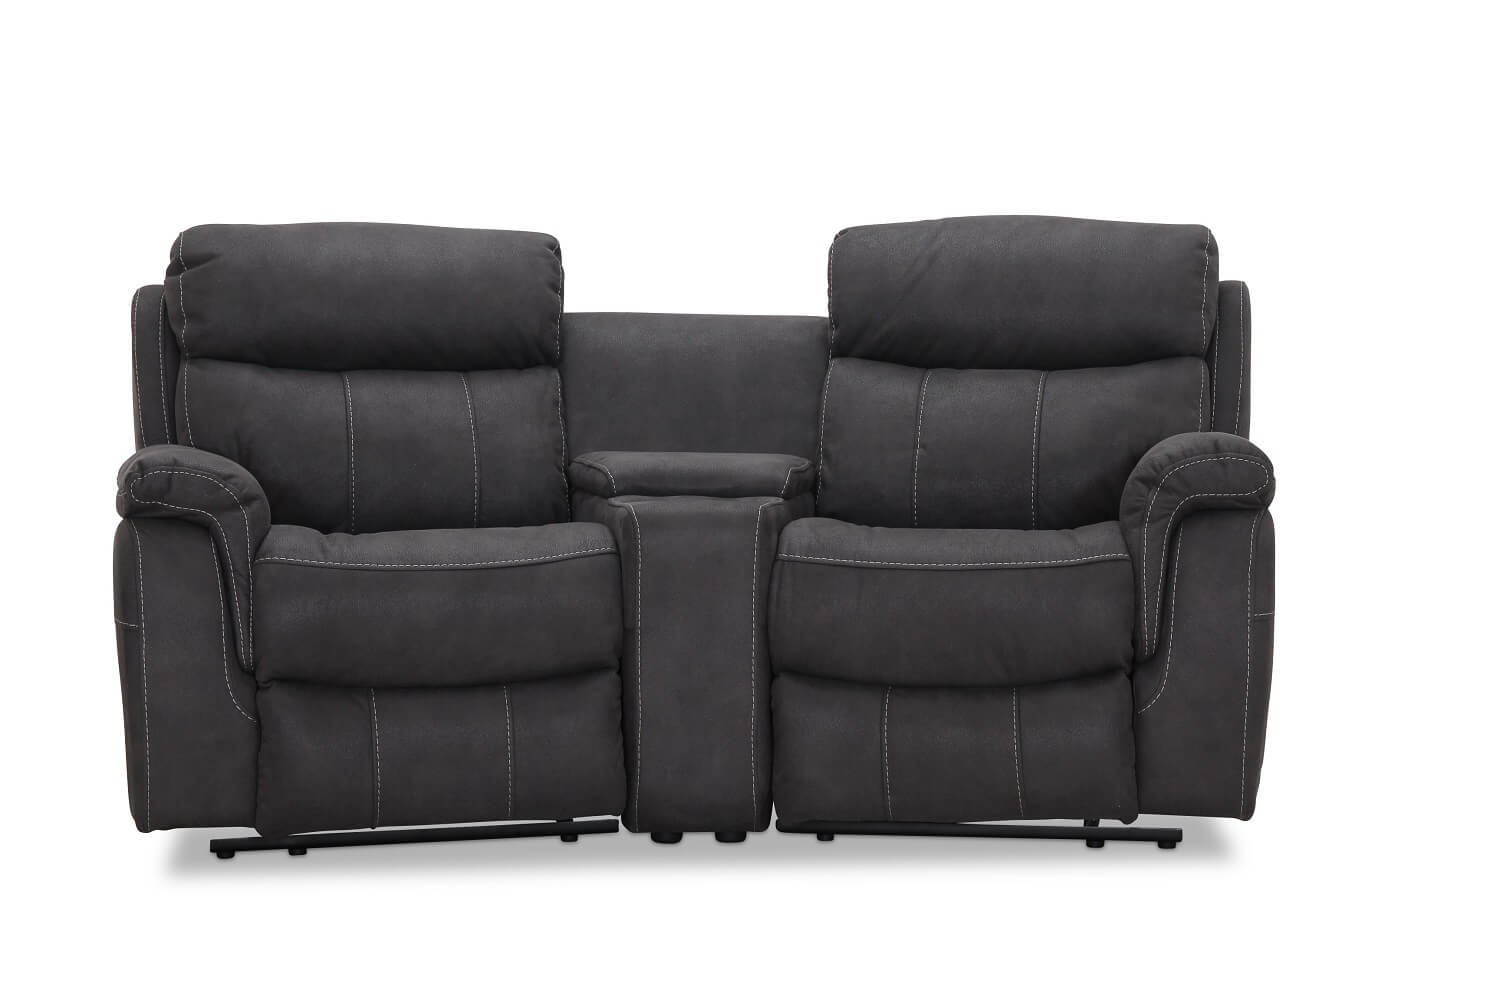 Image of   Arizona biografsofa recliner grå - 2 pers